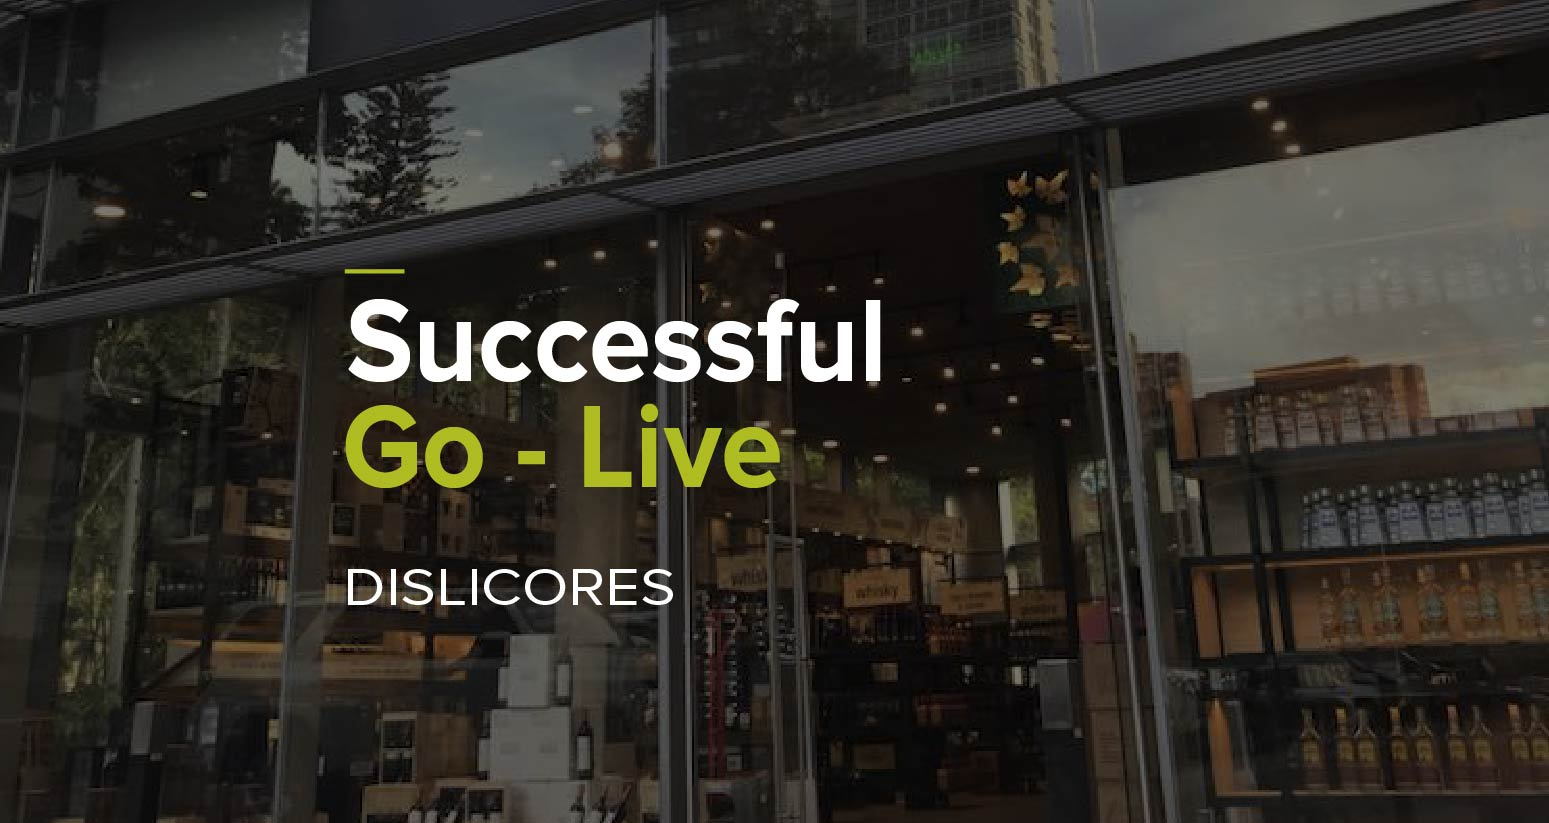 Dislicores Had a Successful Go-Live during the Implementation of Infor SCE